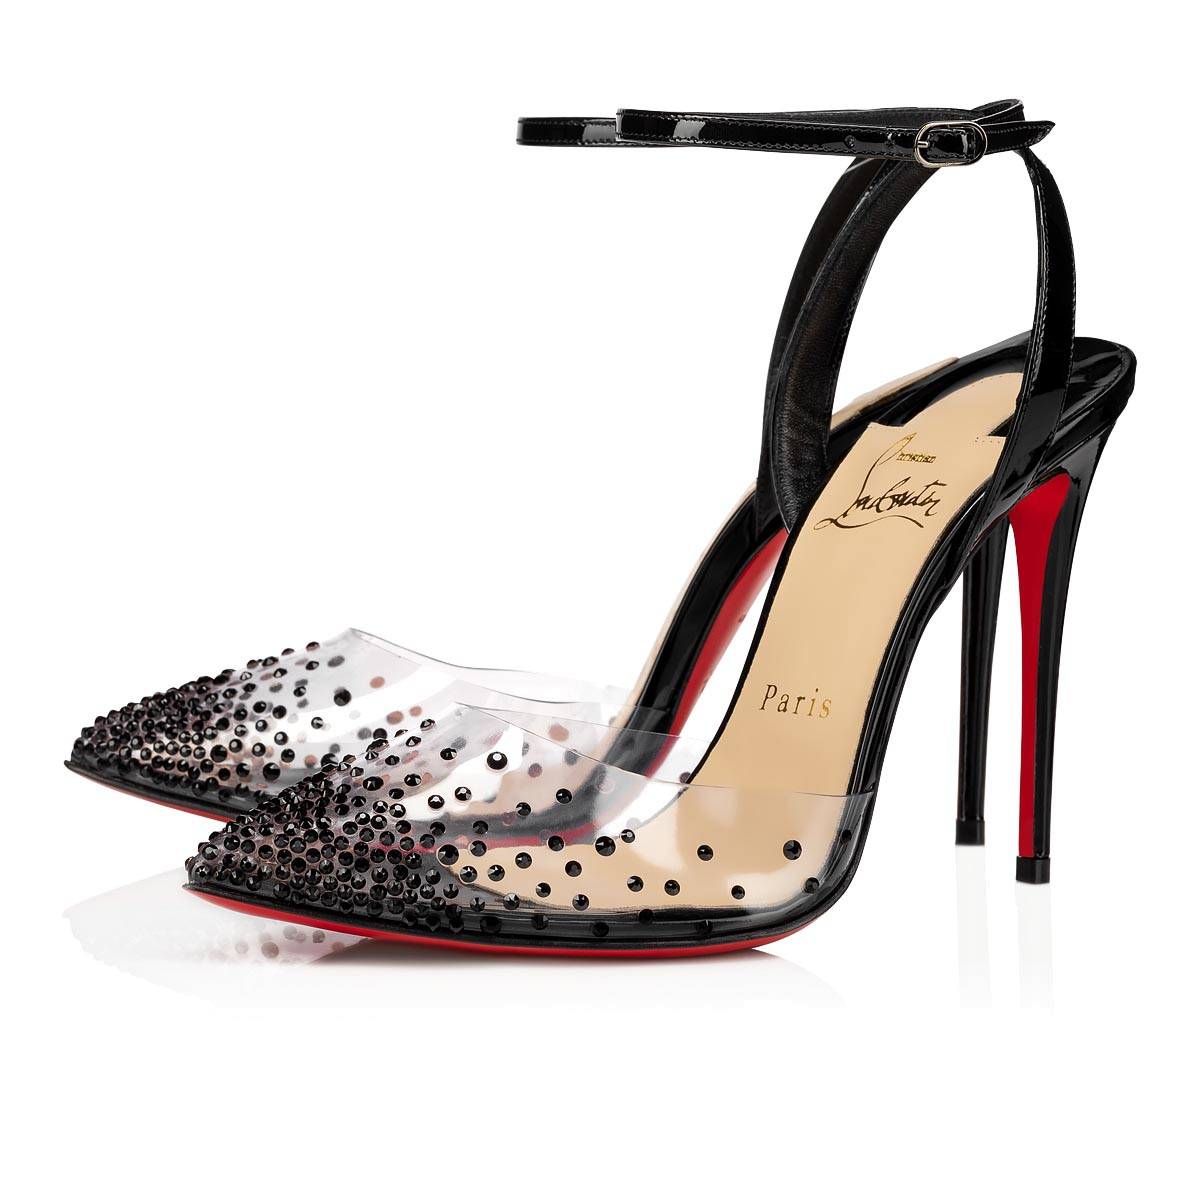 Souliers - Spikaqueen 100 Pvc - Christian Louboutin